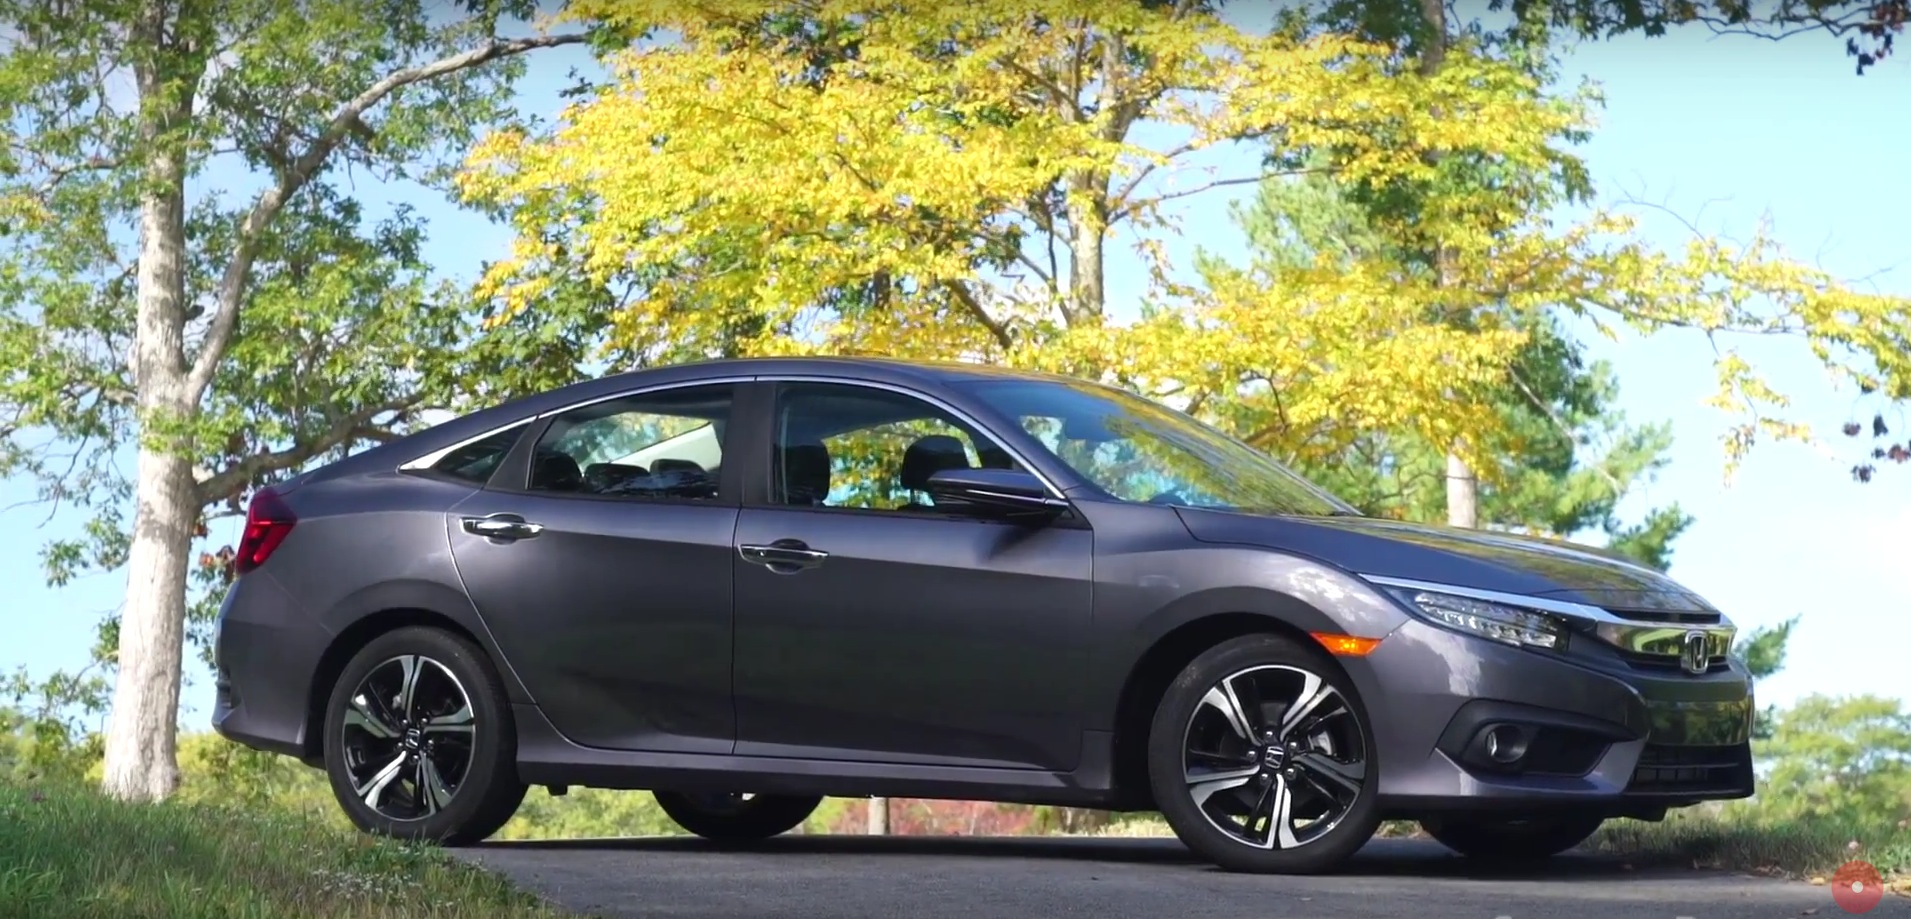 2016 Honda Civic Consumer Reports Review Finds A Few Flaws